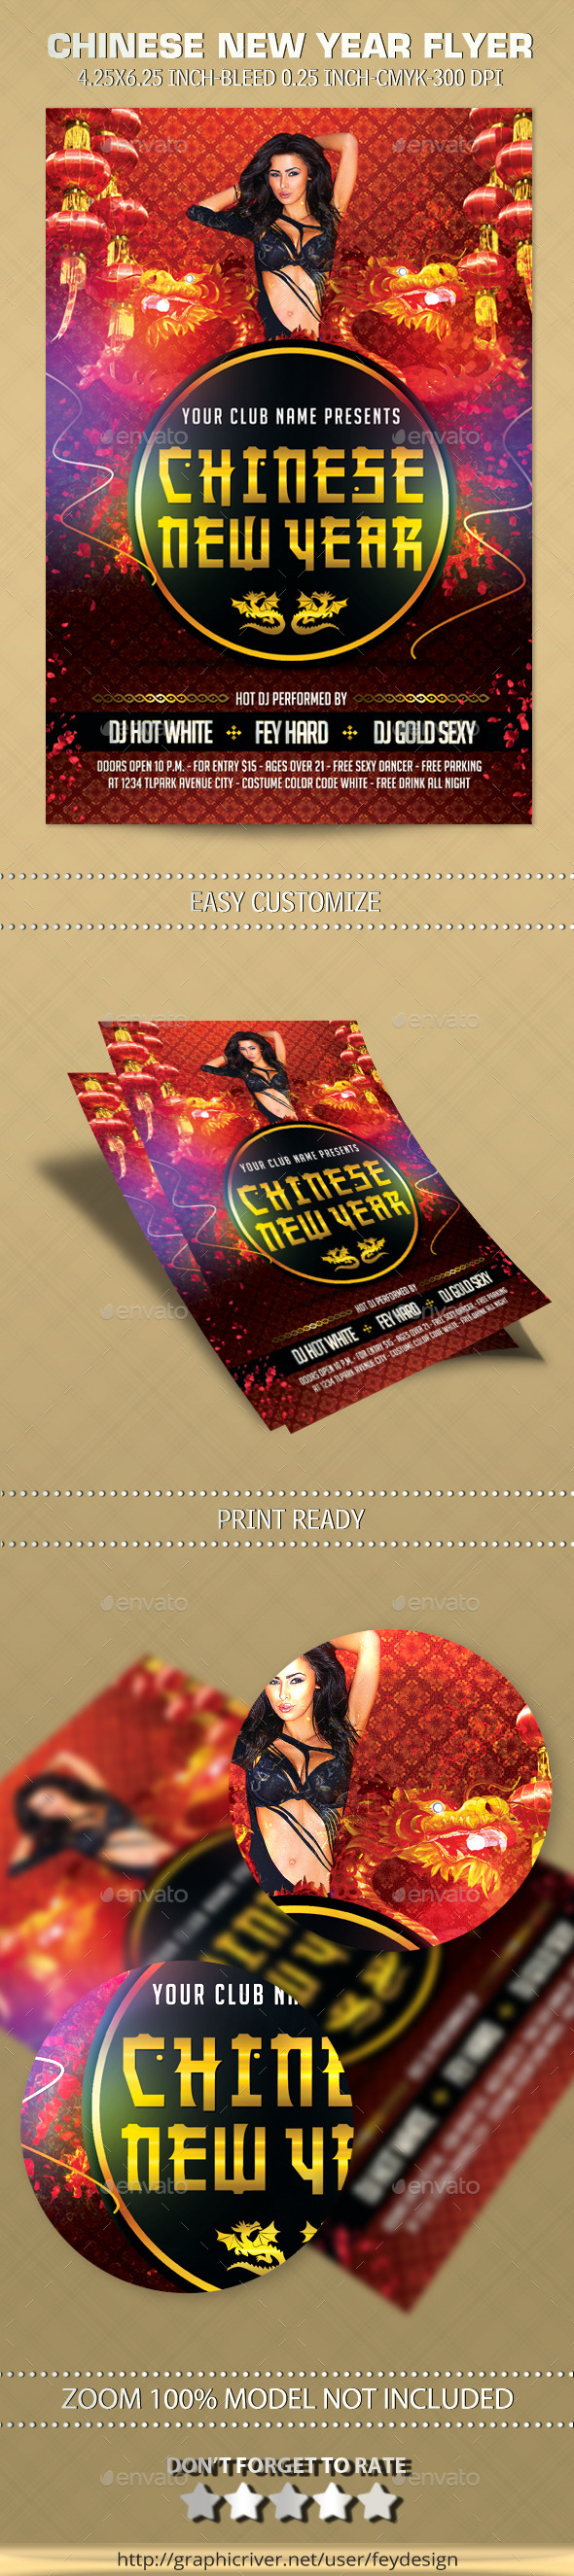 GraphicRiver Chinese New Year Flyer 9935104